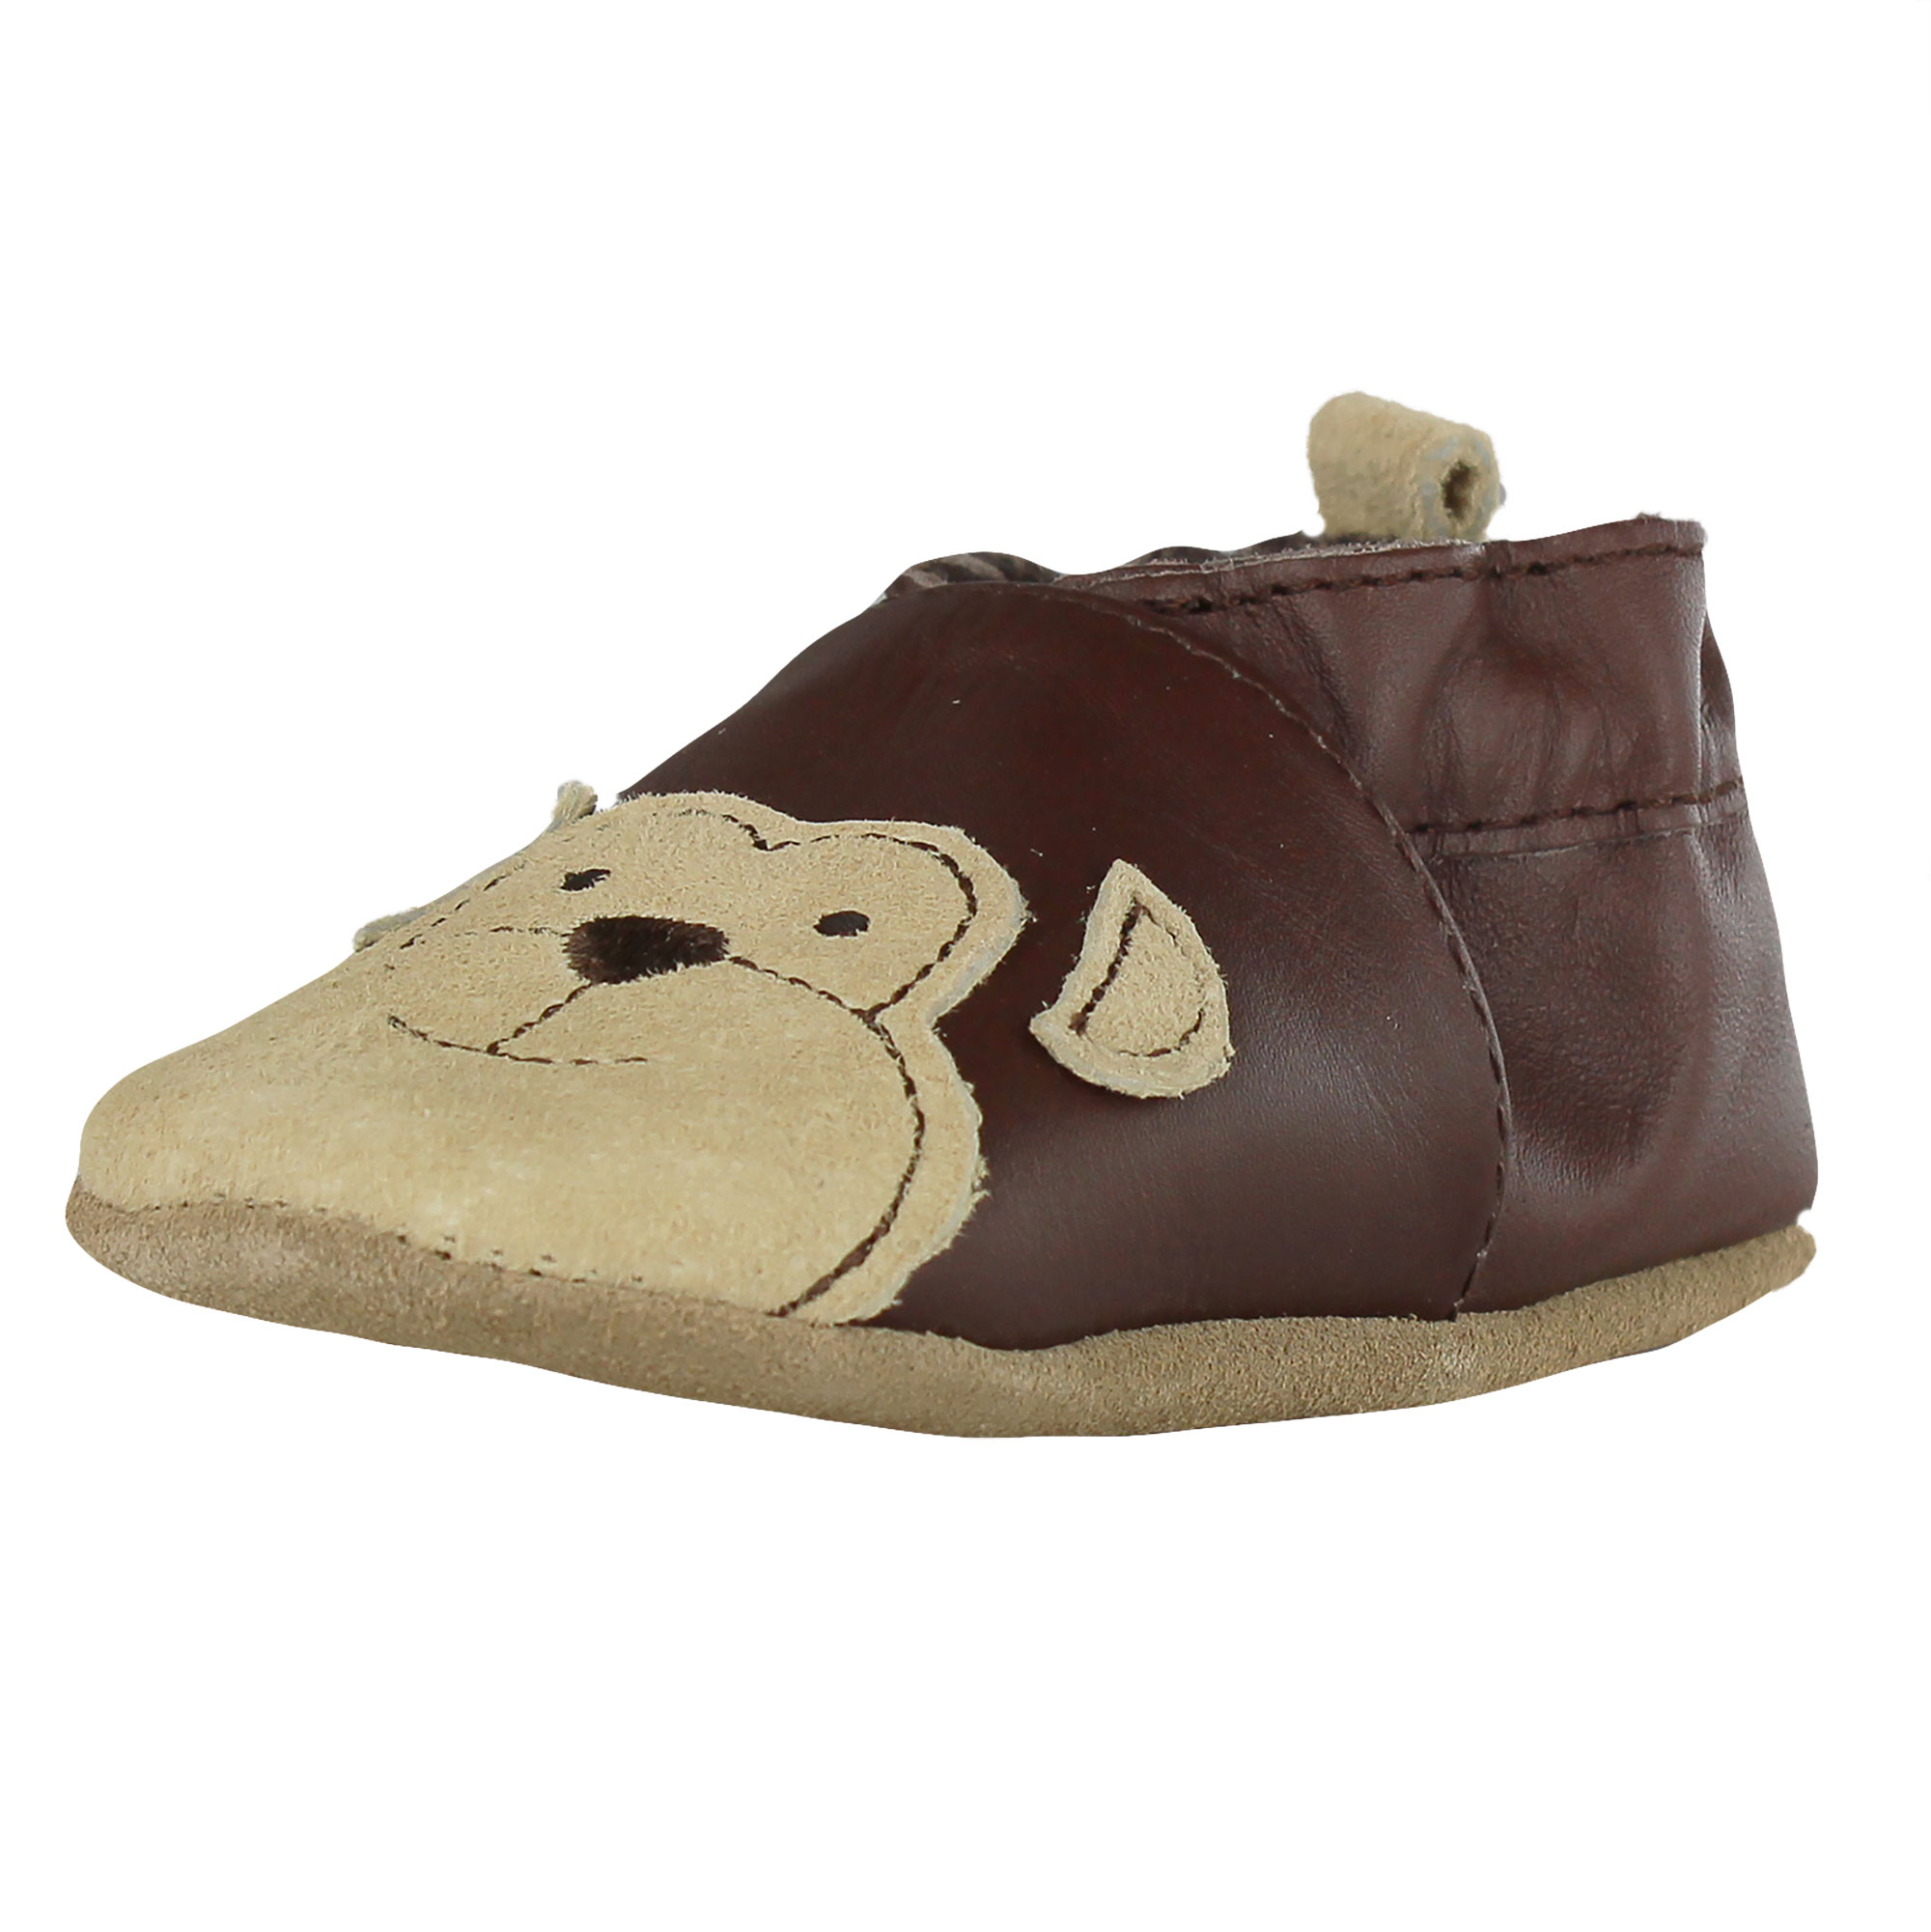 4219e121f Robeez Newborn Baby-Boys Brown Leather Soft Sole Baby Shoes with Beige  Monkey (Infant Prewalker Crib Shoes) 0-6 Months - Monkey Myles First  Walking Suede ...